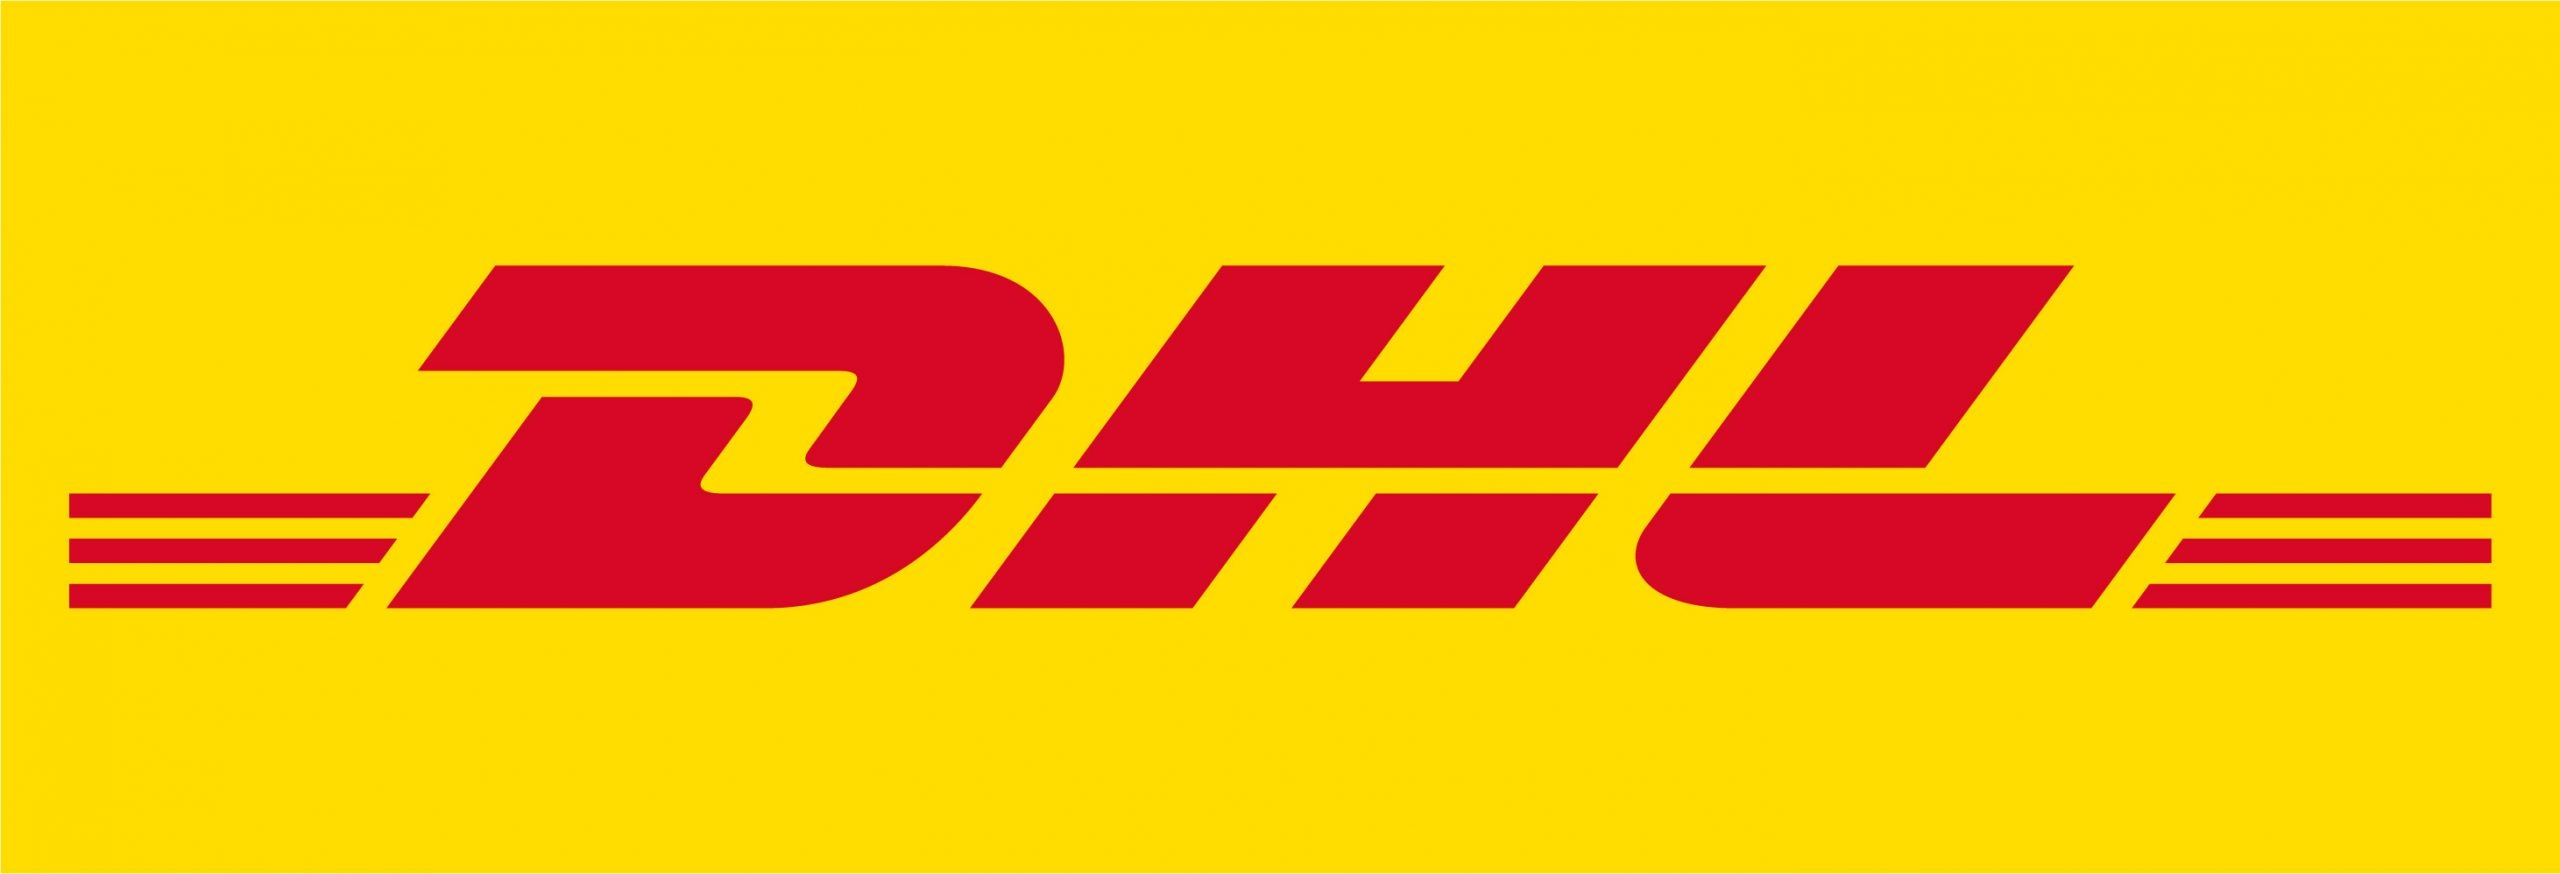 DHL scaled